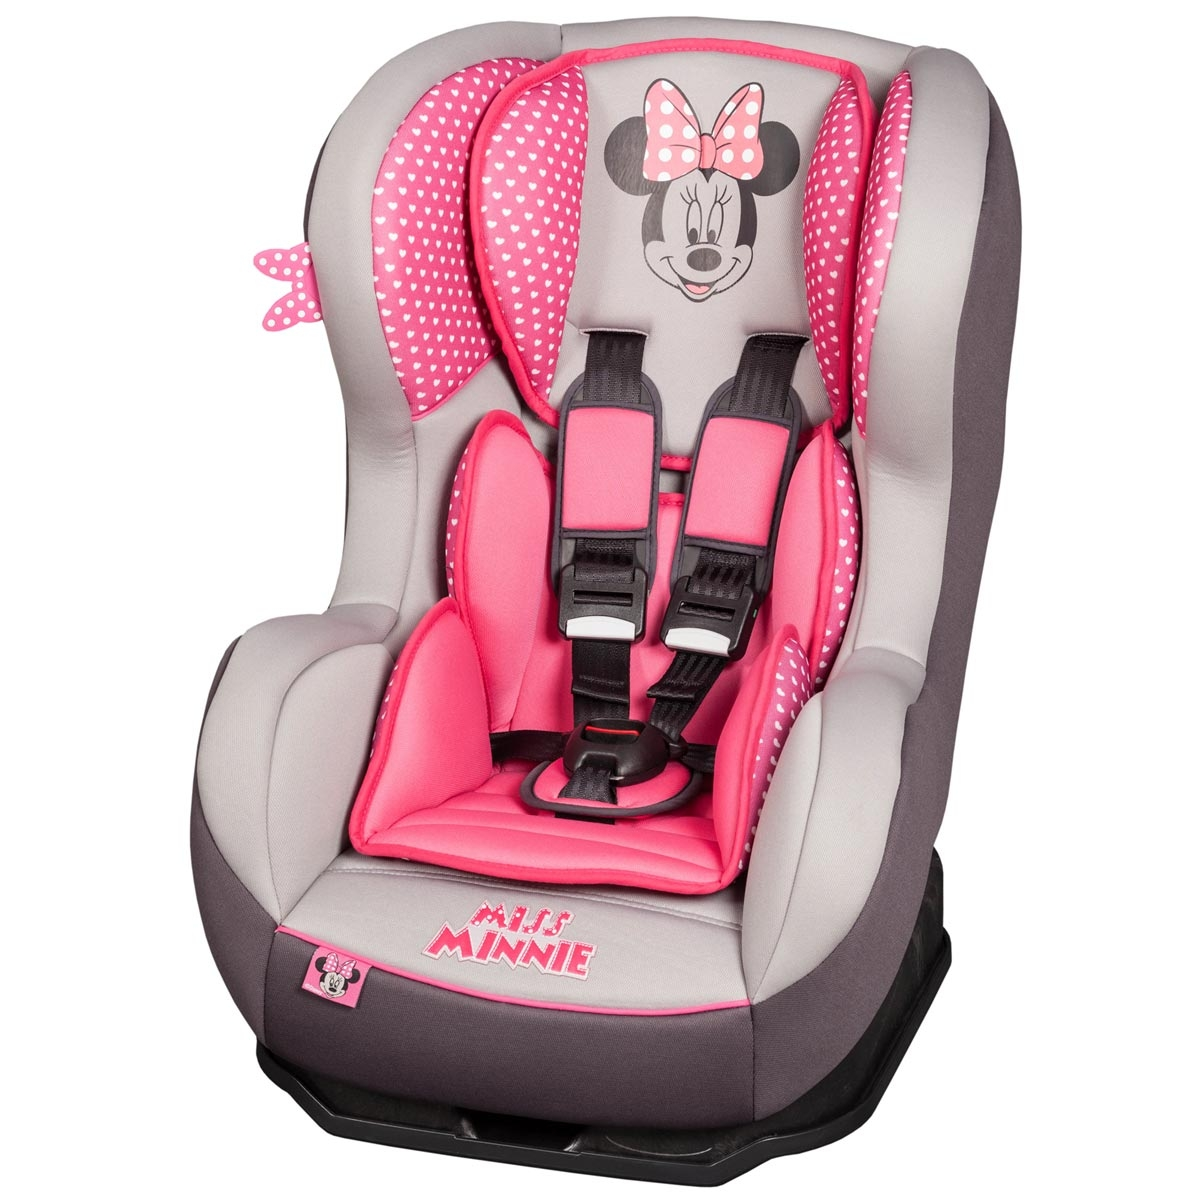 osann disney cosmo sp kindersitz 0 18 kg kollektion